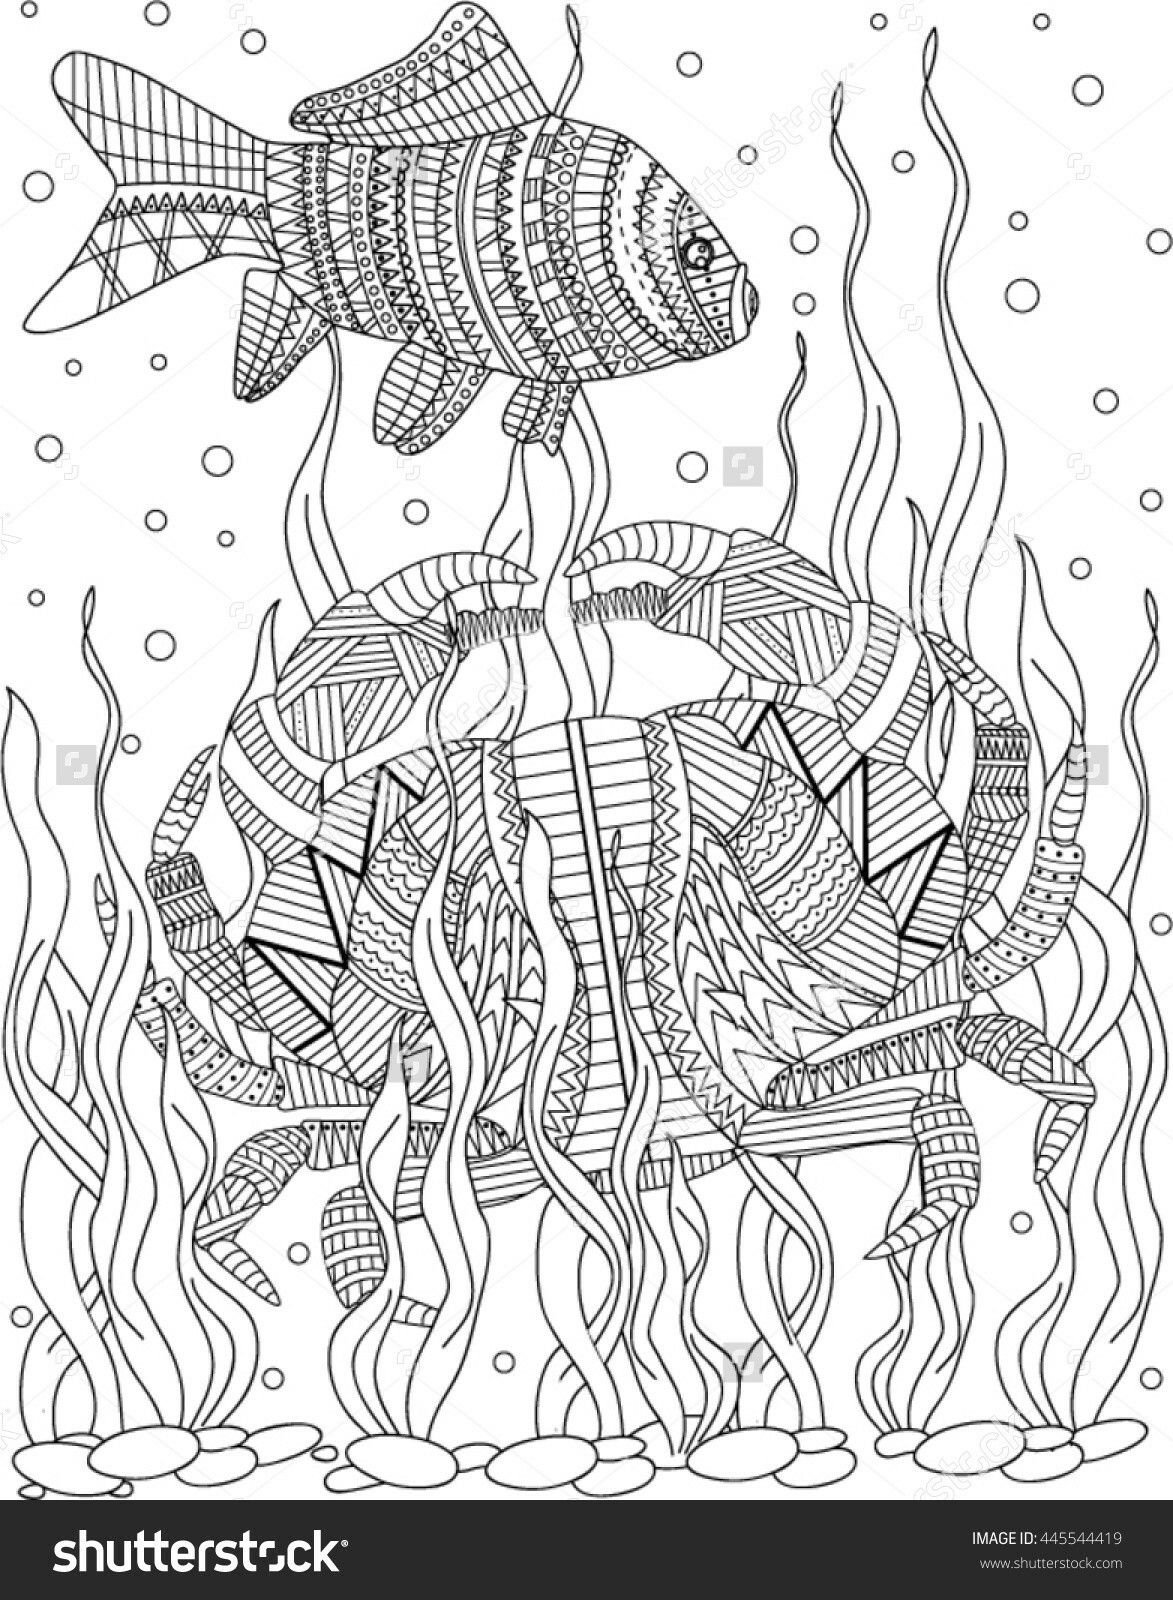 Pin Auf Coloring Under The Sea